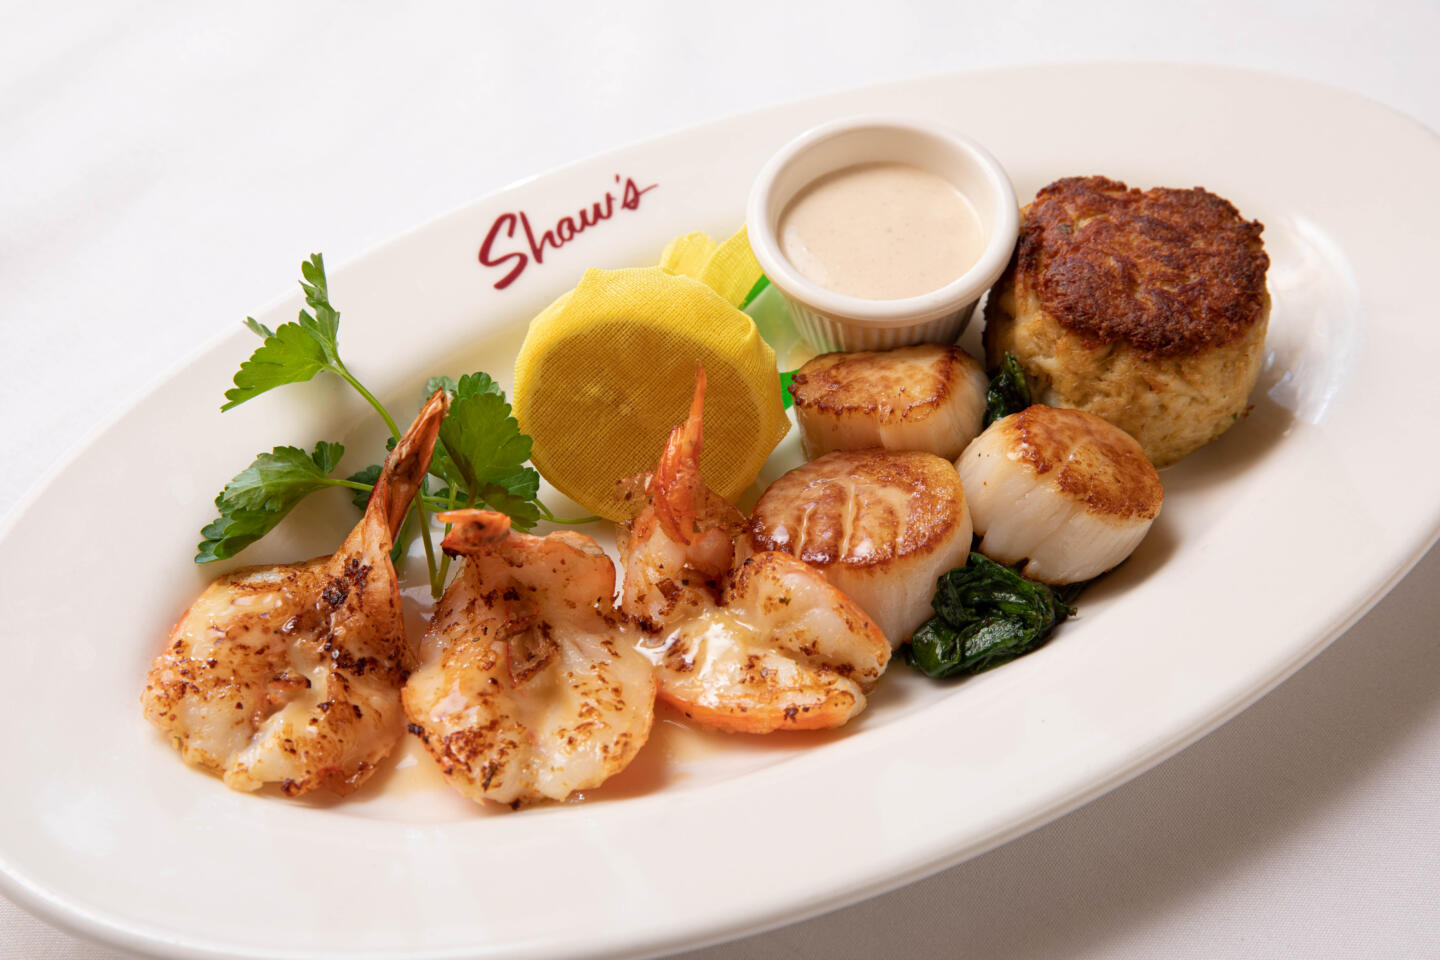 Shaws Scallops shrimp and crab cake